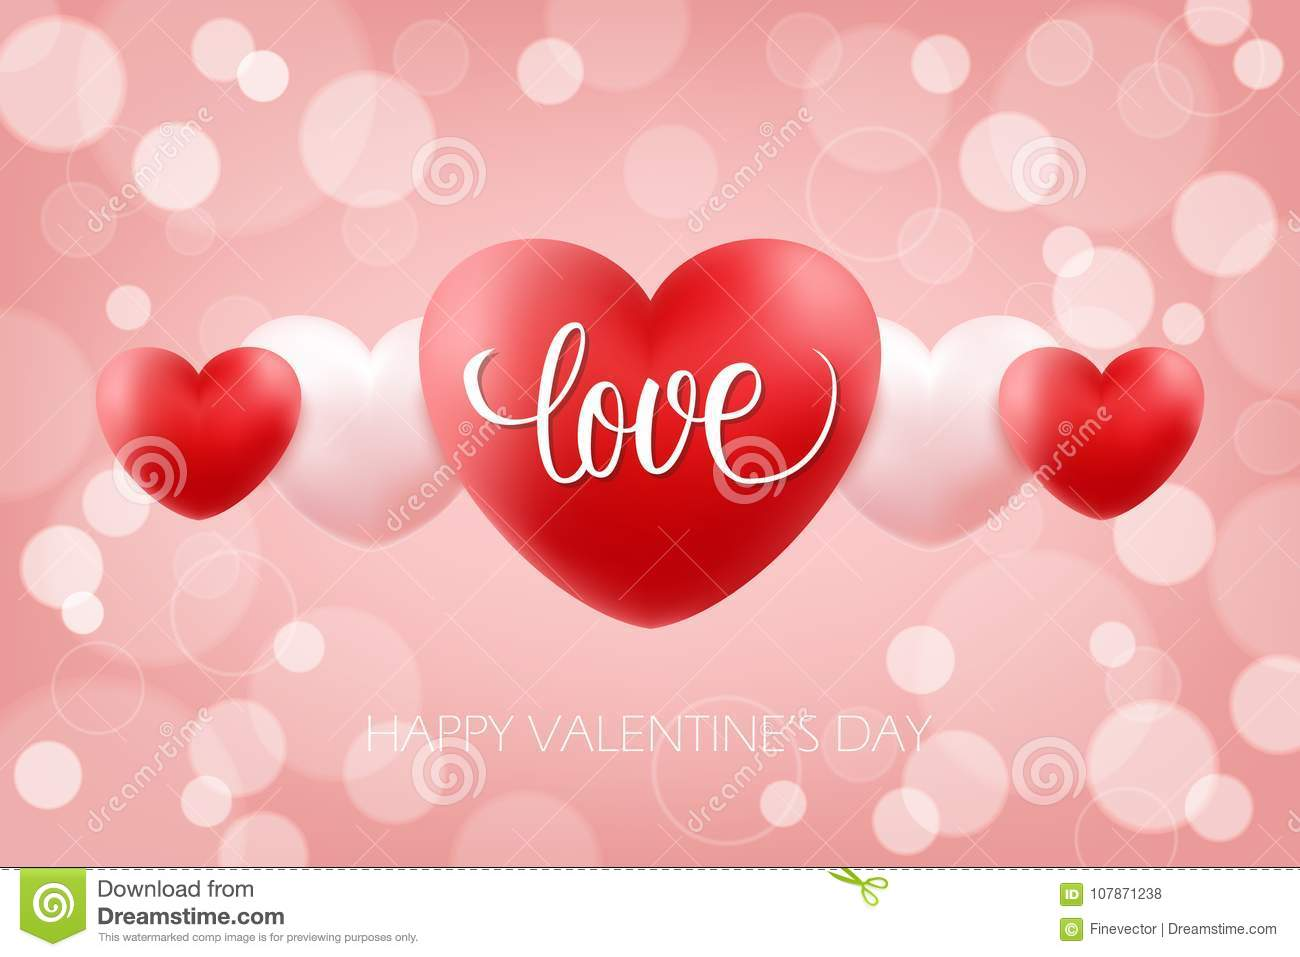 Happy valentines day celebrate background with handwritten word love happy valentines day celebrate background with handwritten word love and realistic hearts 14 february holiday greetings vector illustration m4hsunfo